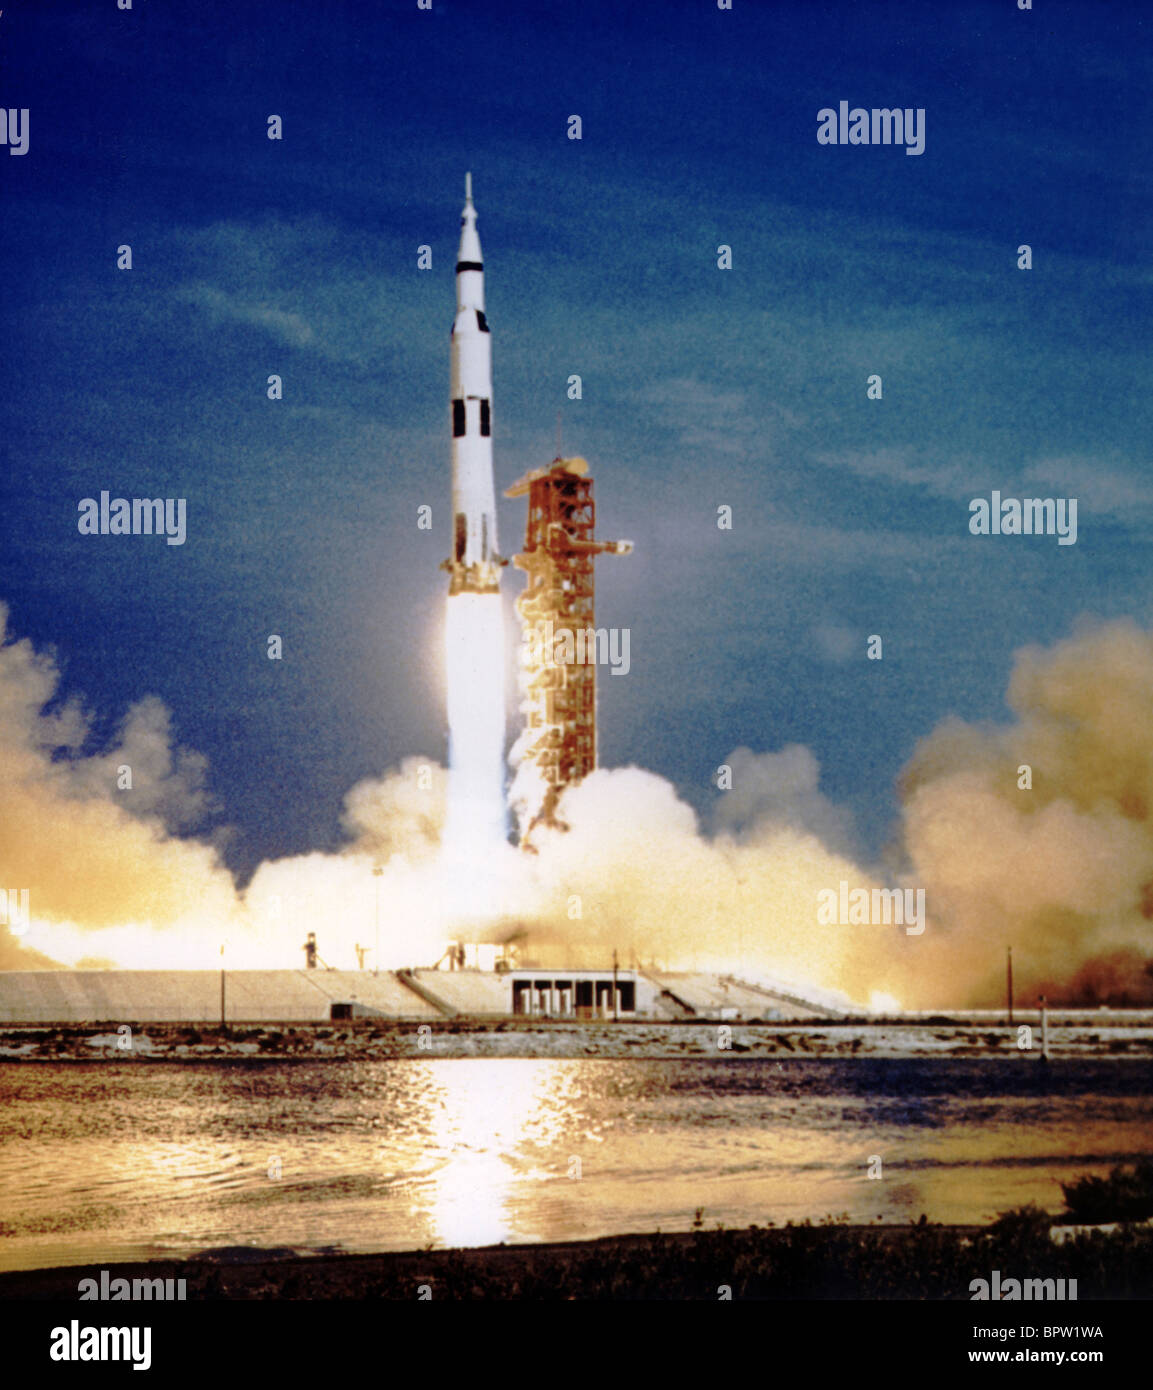 Lancement d'une fusée Saturn Apollo 11 (1969) Photo Stock